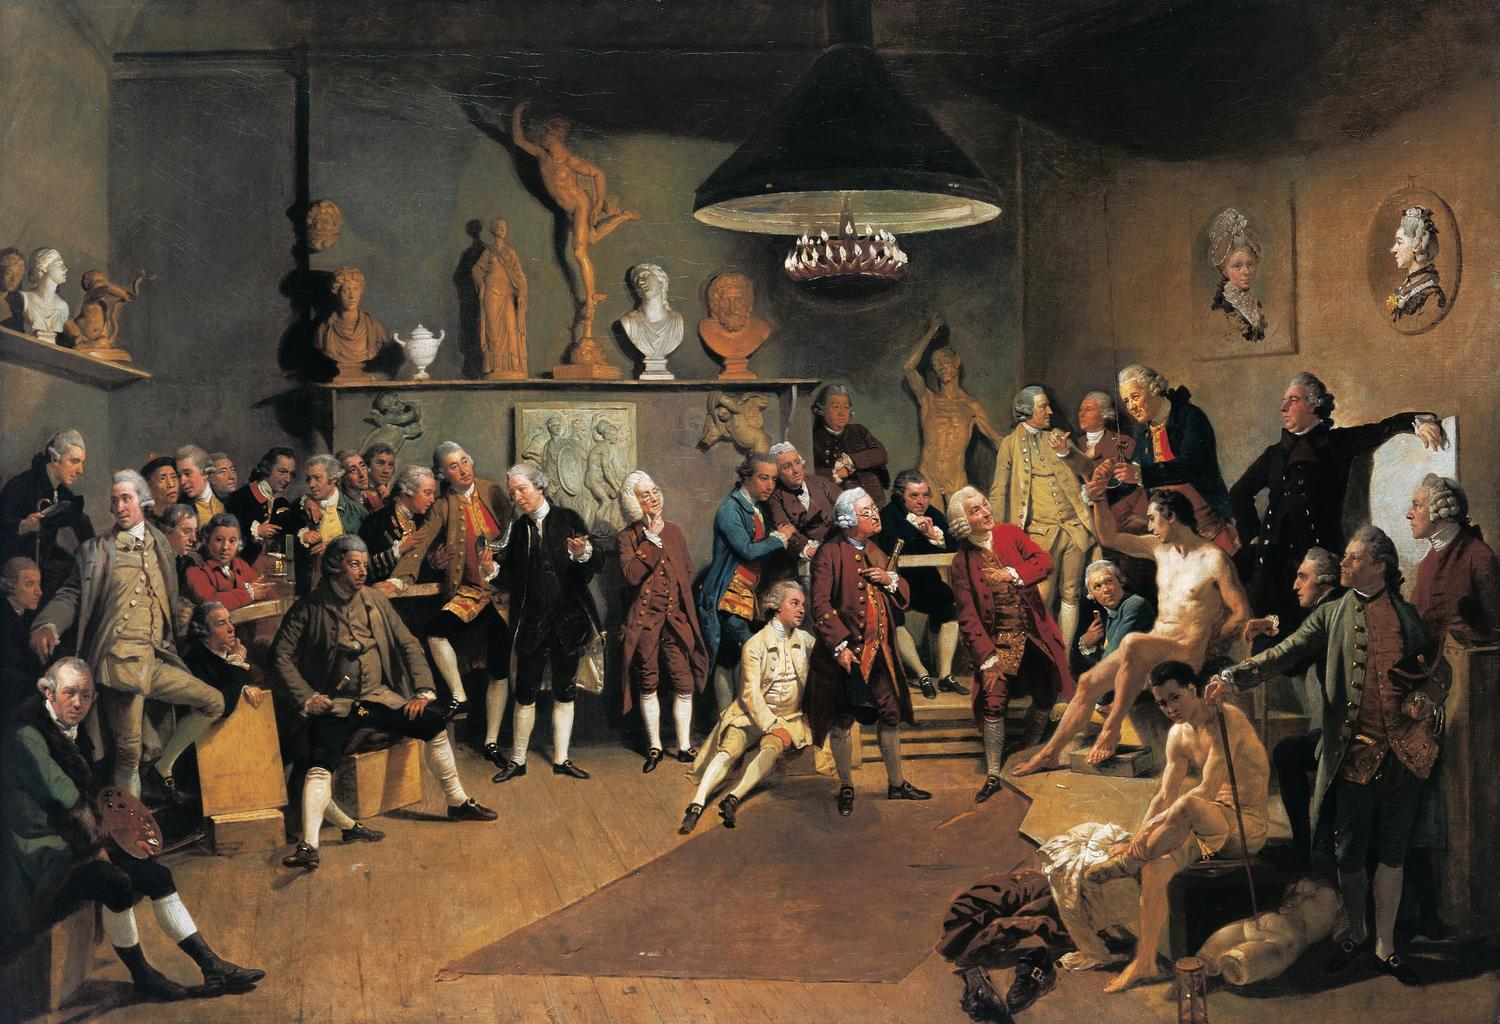 Academicians of the Royal Academy, 1771-72